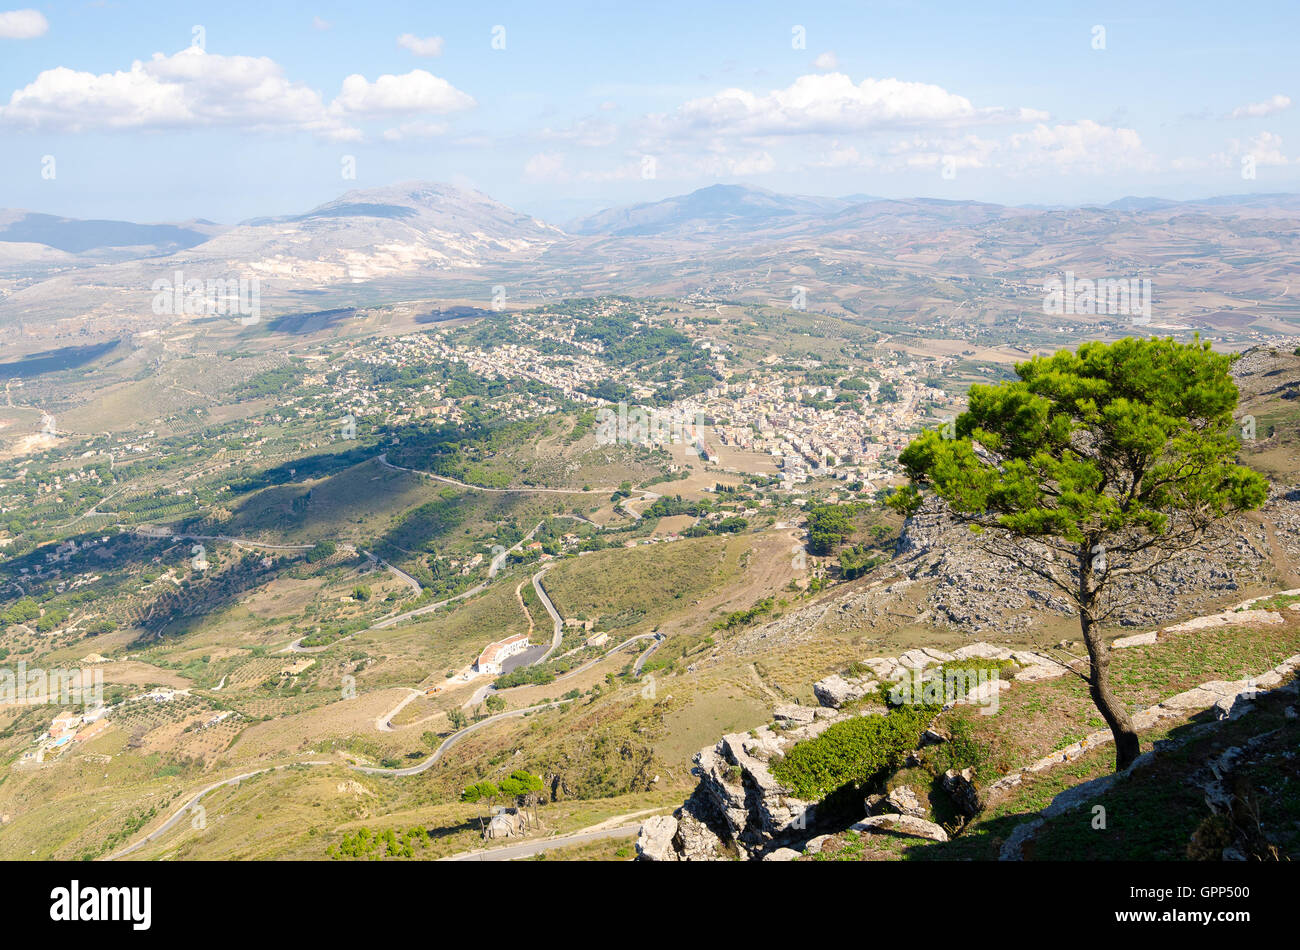 Aerial view of the Erice, Sicily, Italy. - Stock Image